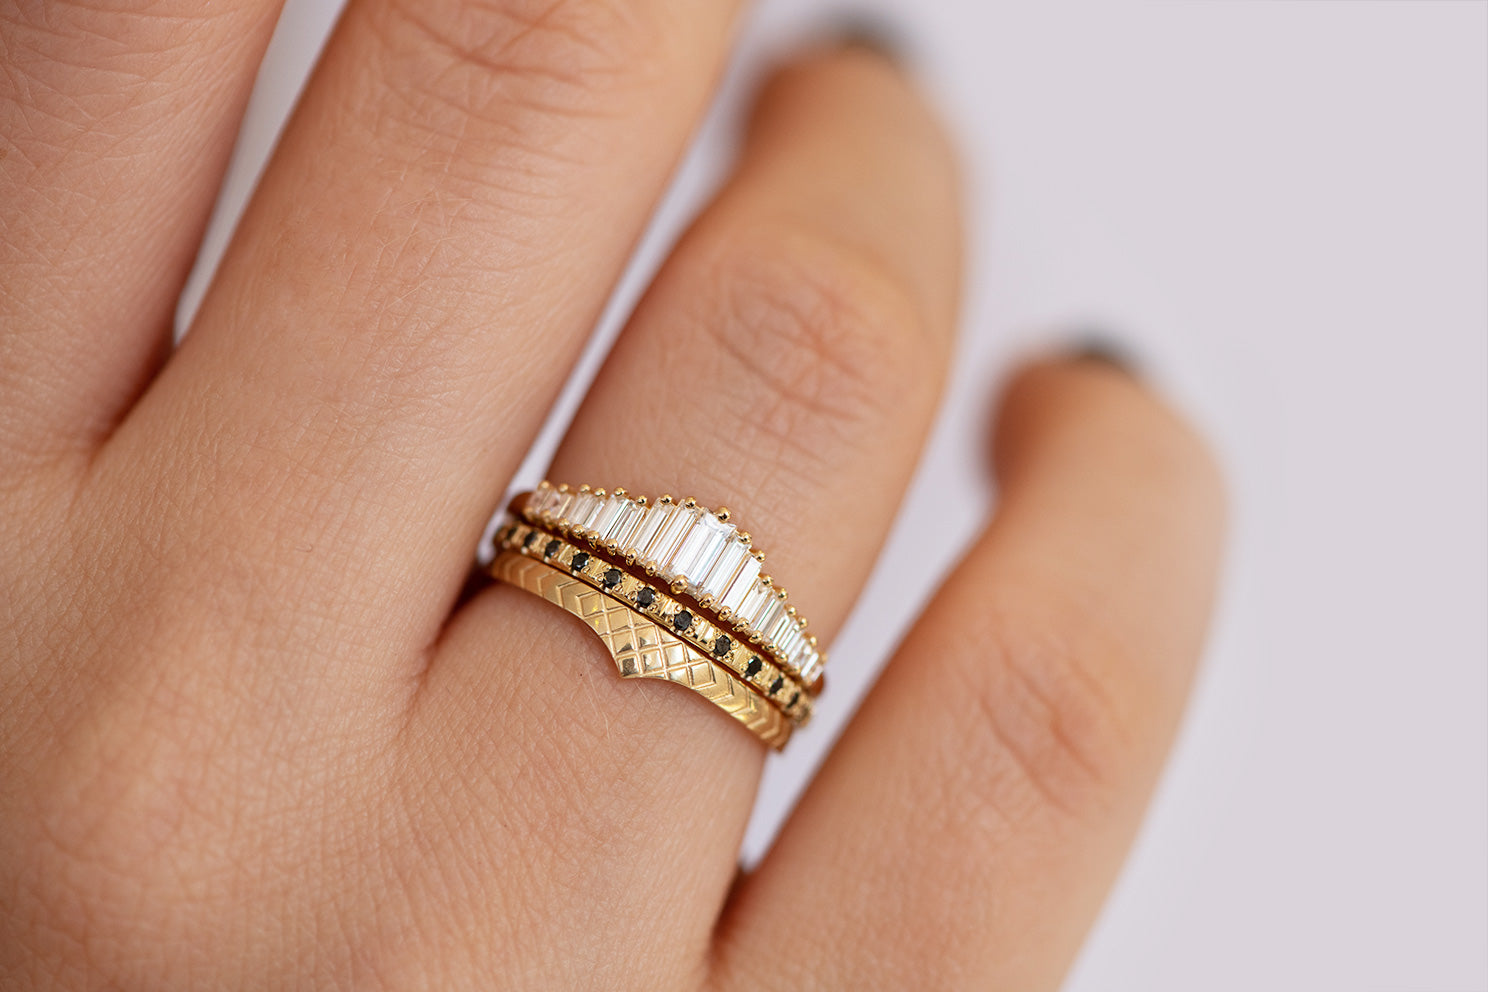 Delicate Wedding Band - Patterned Ring on Hand in three ring set